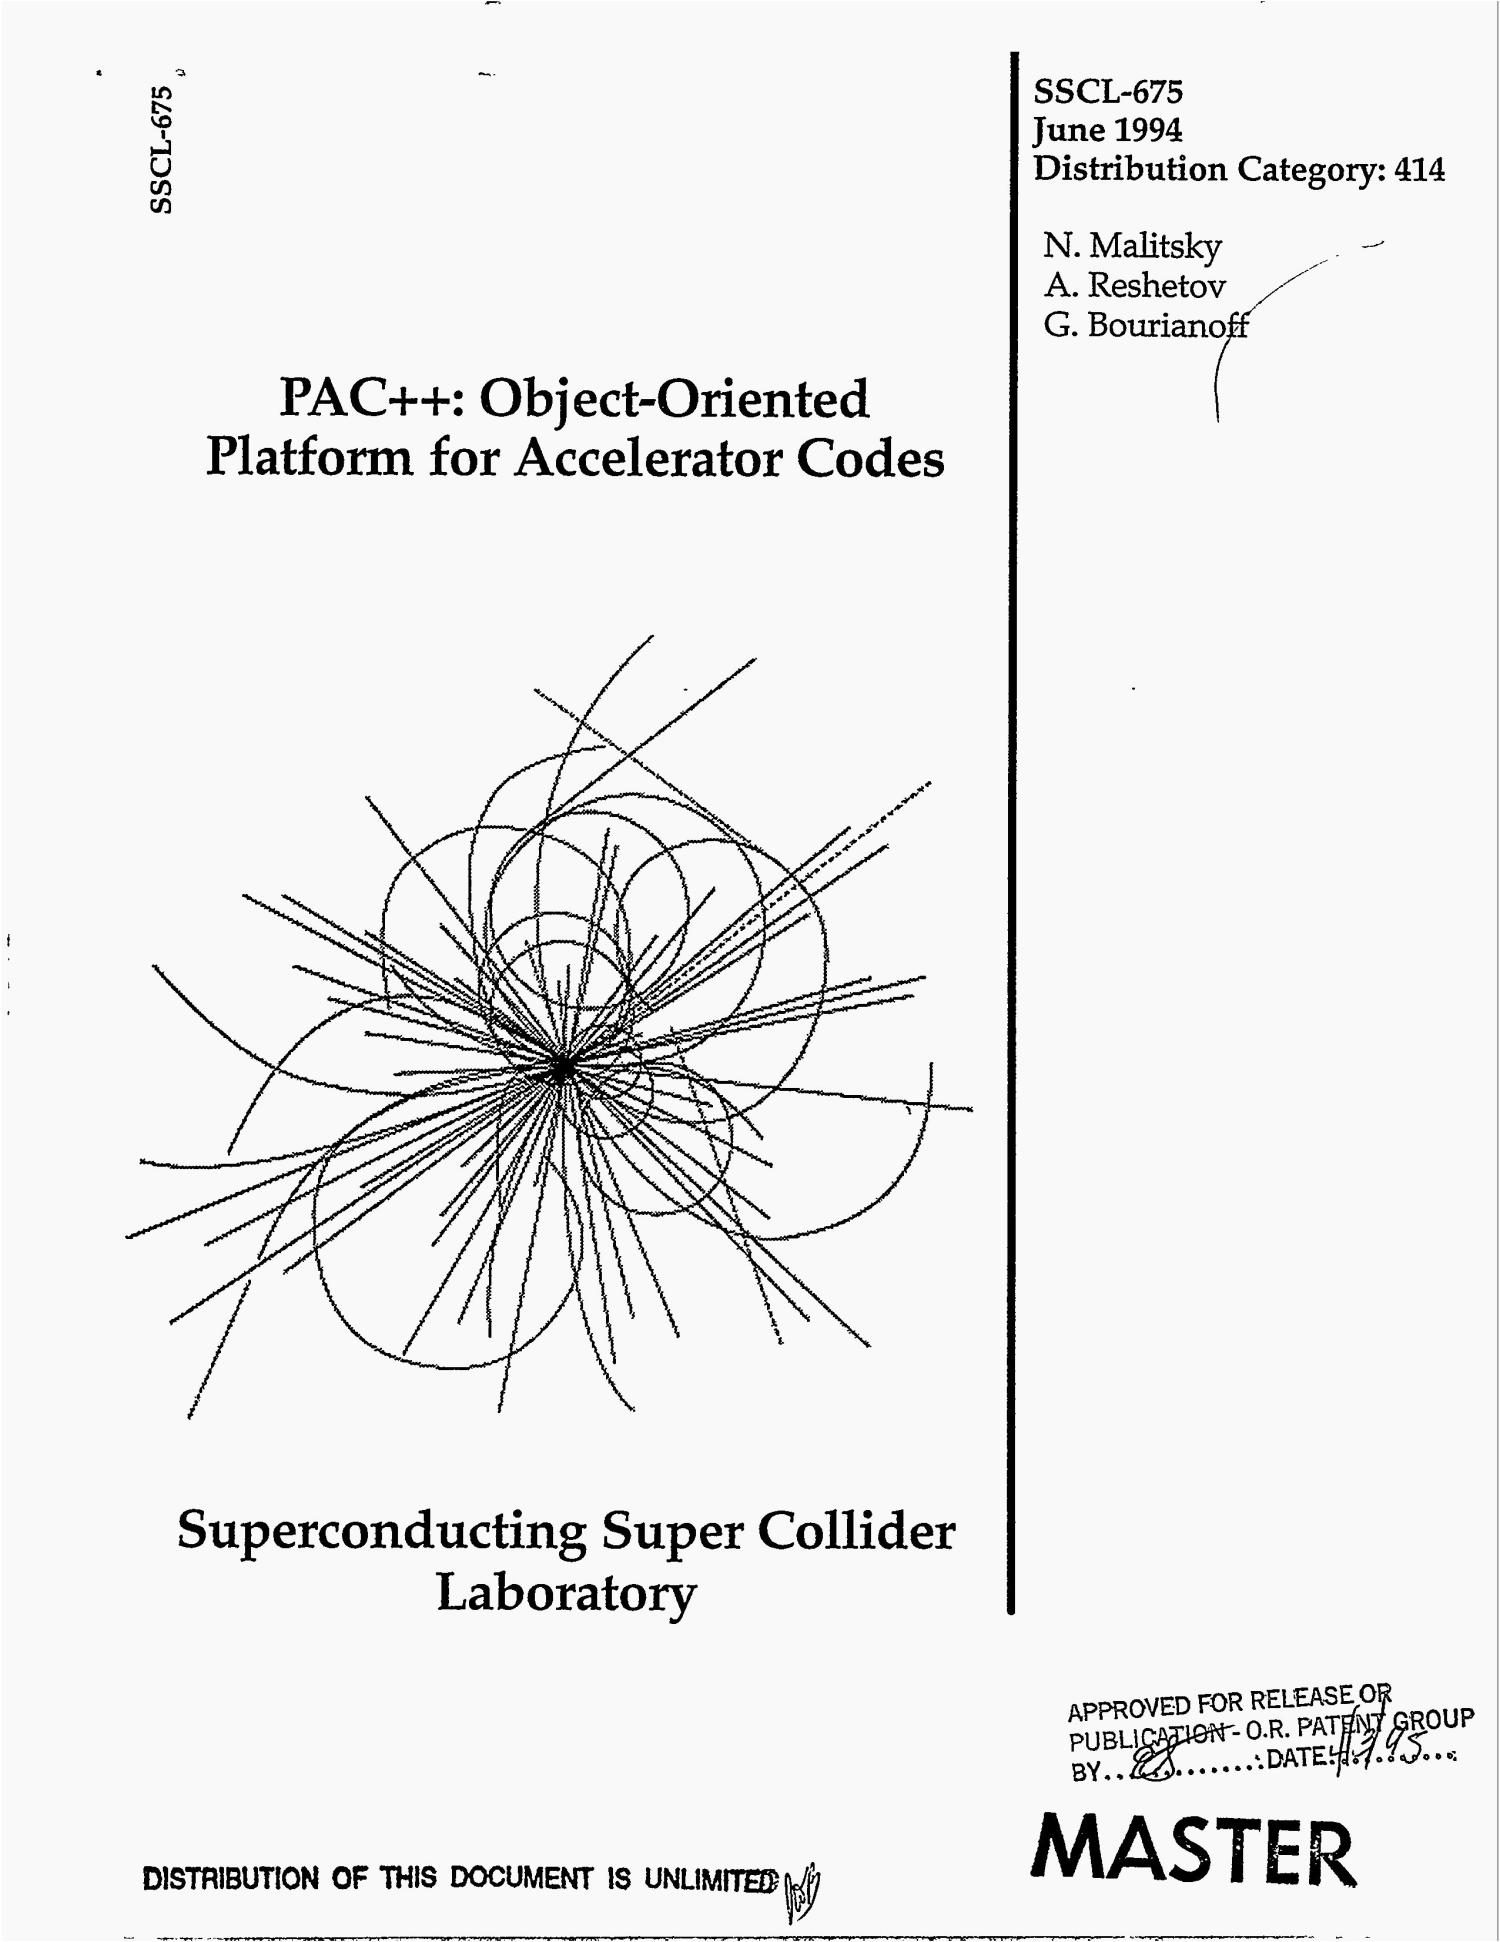 PAC++: Object-oriented platform for accelerator codes                                                                                                      [Sequence #]: 1 of 38